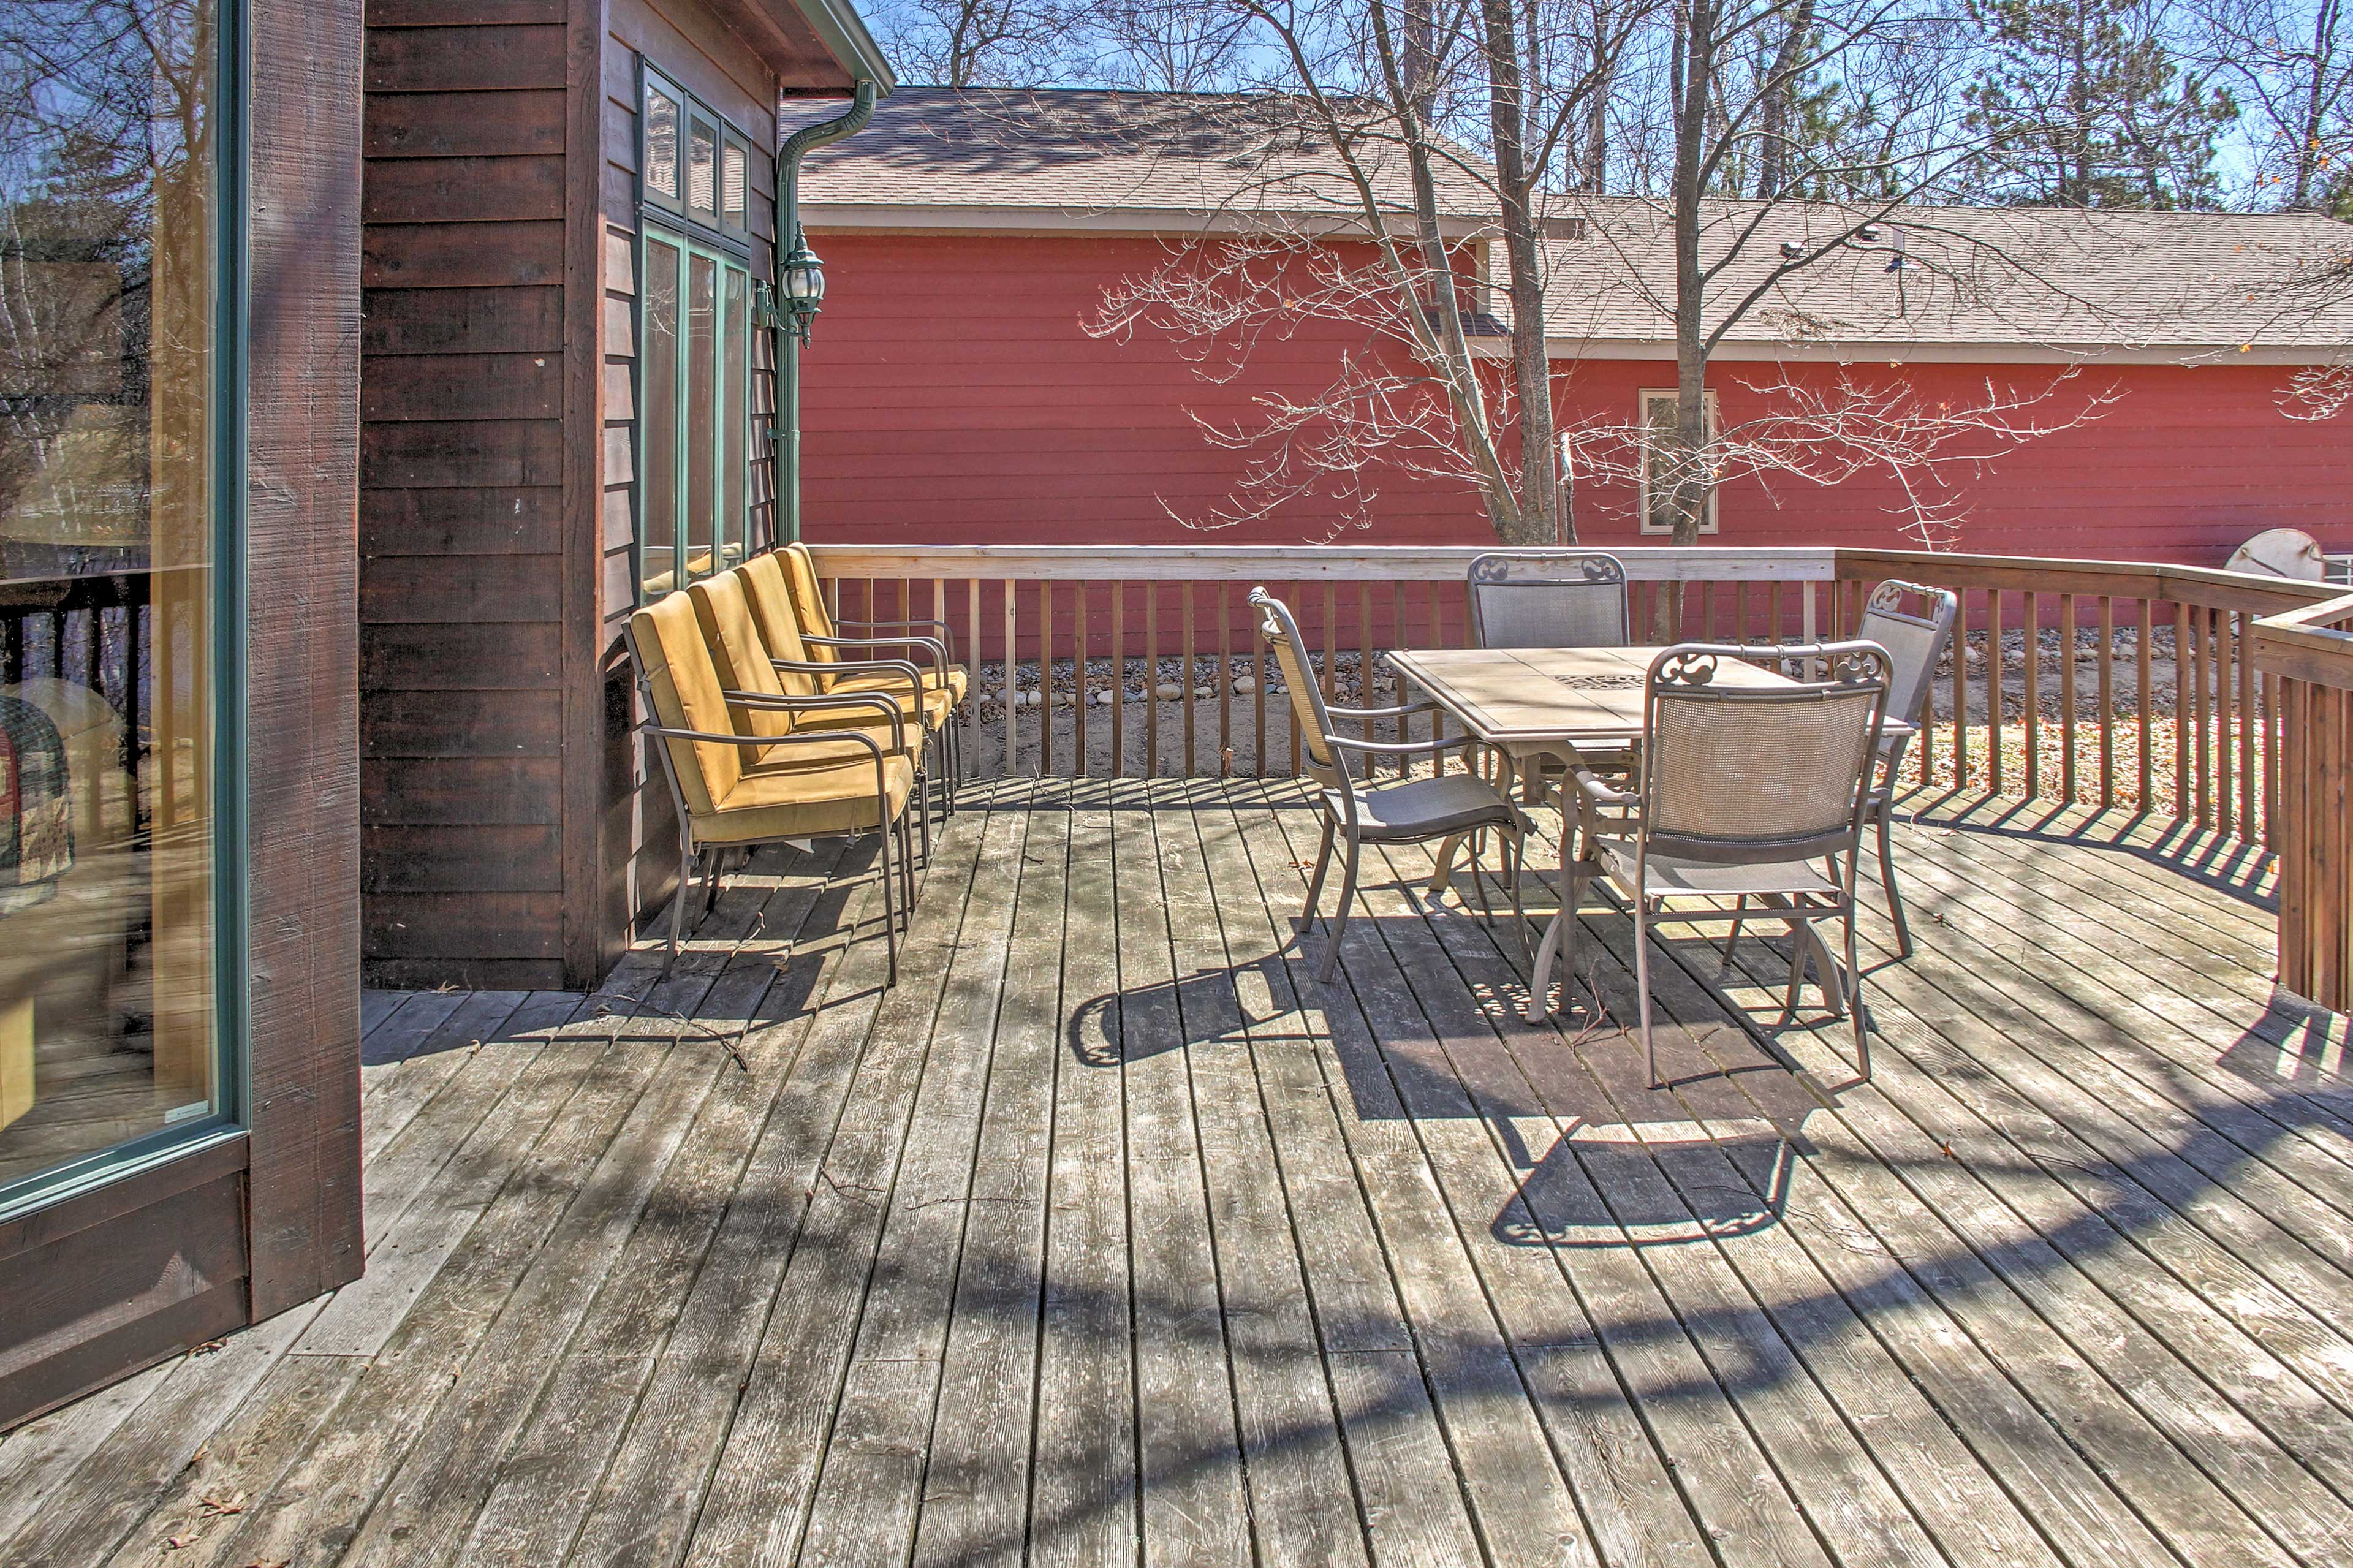 Early risers will look forward to sipping coffee outside on the private deck.